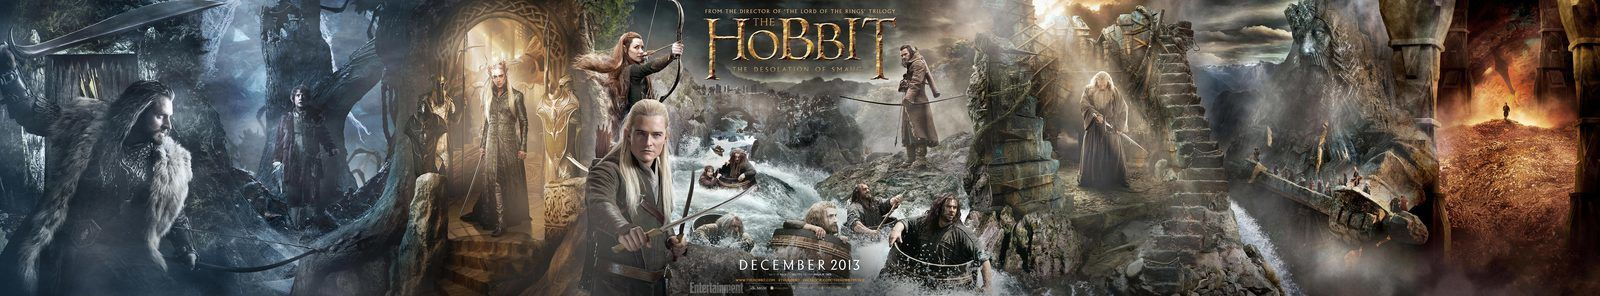 Le Hobbit, la désolation de Smaug en DVD/BluRay